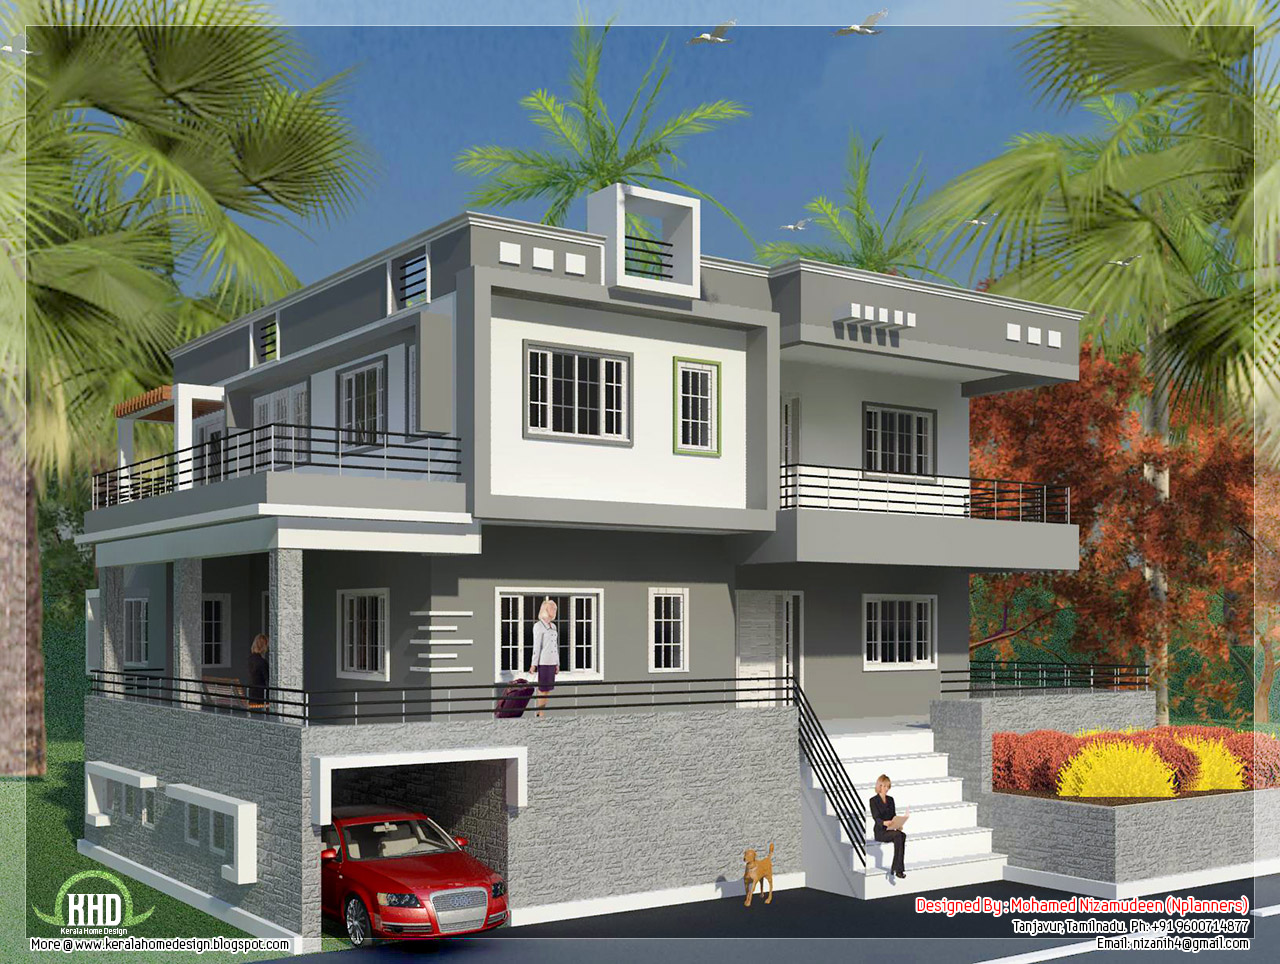 North indian style minimalist house exterior design for House exterior design pictures in indian